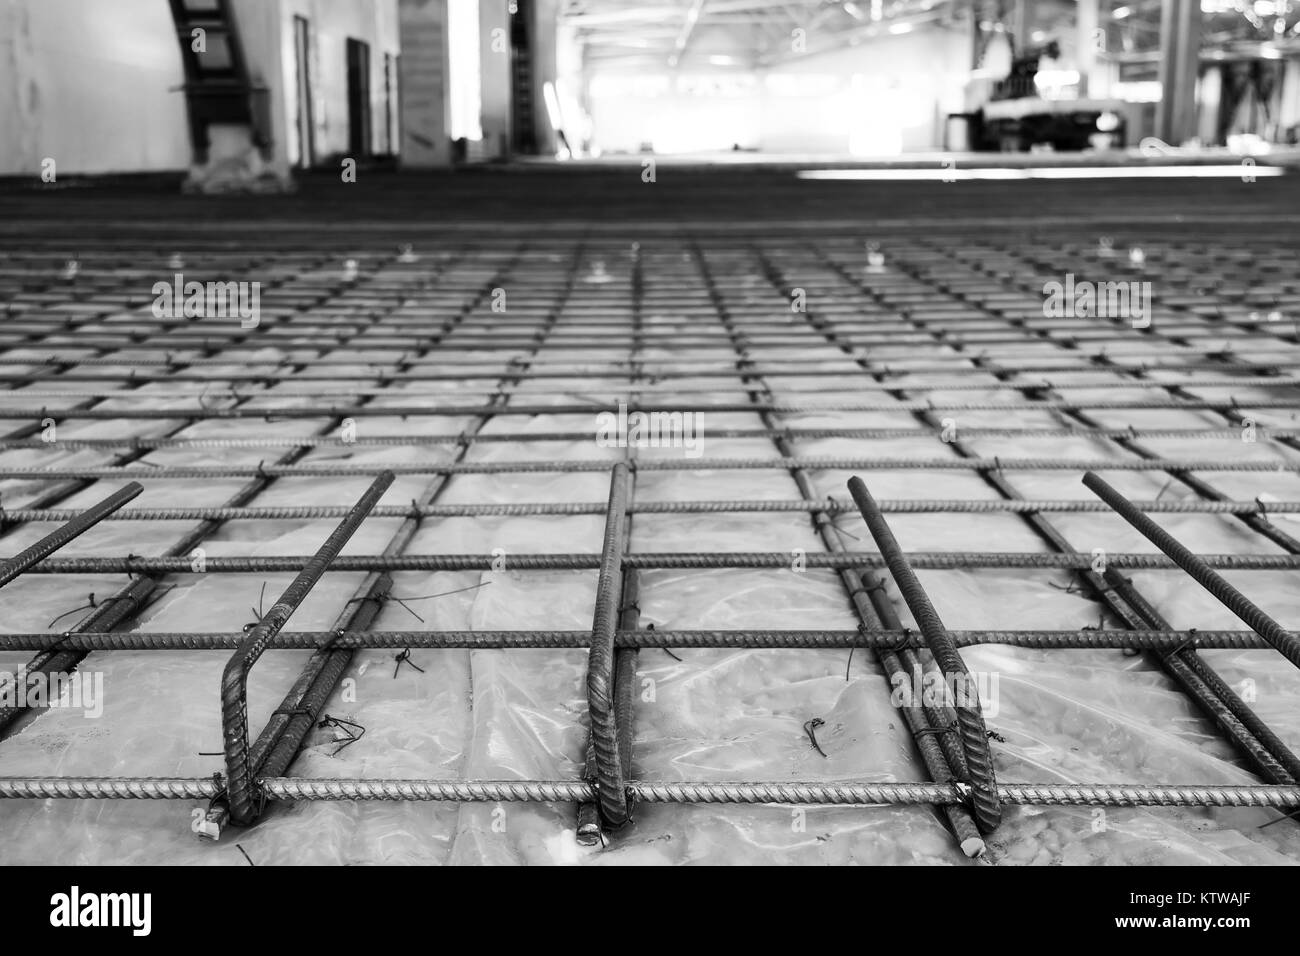 Reinforcement Steel Cage Stockfotos & Reinforcement Steel Cage ...